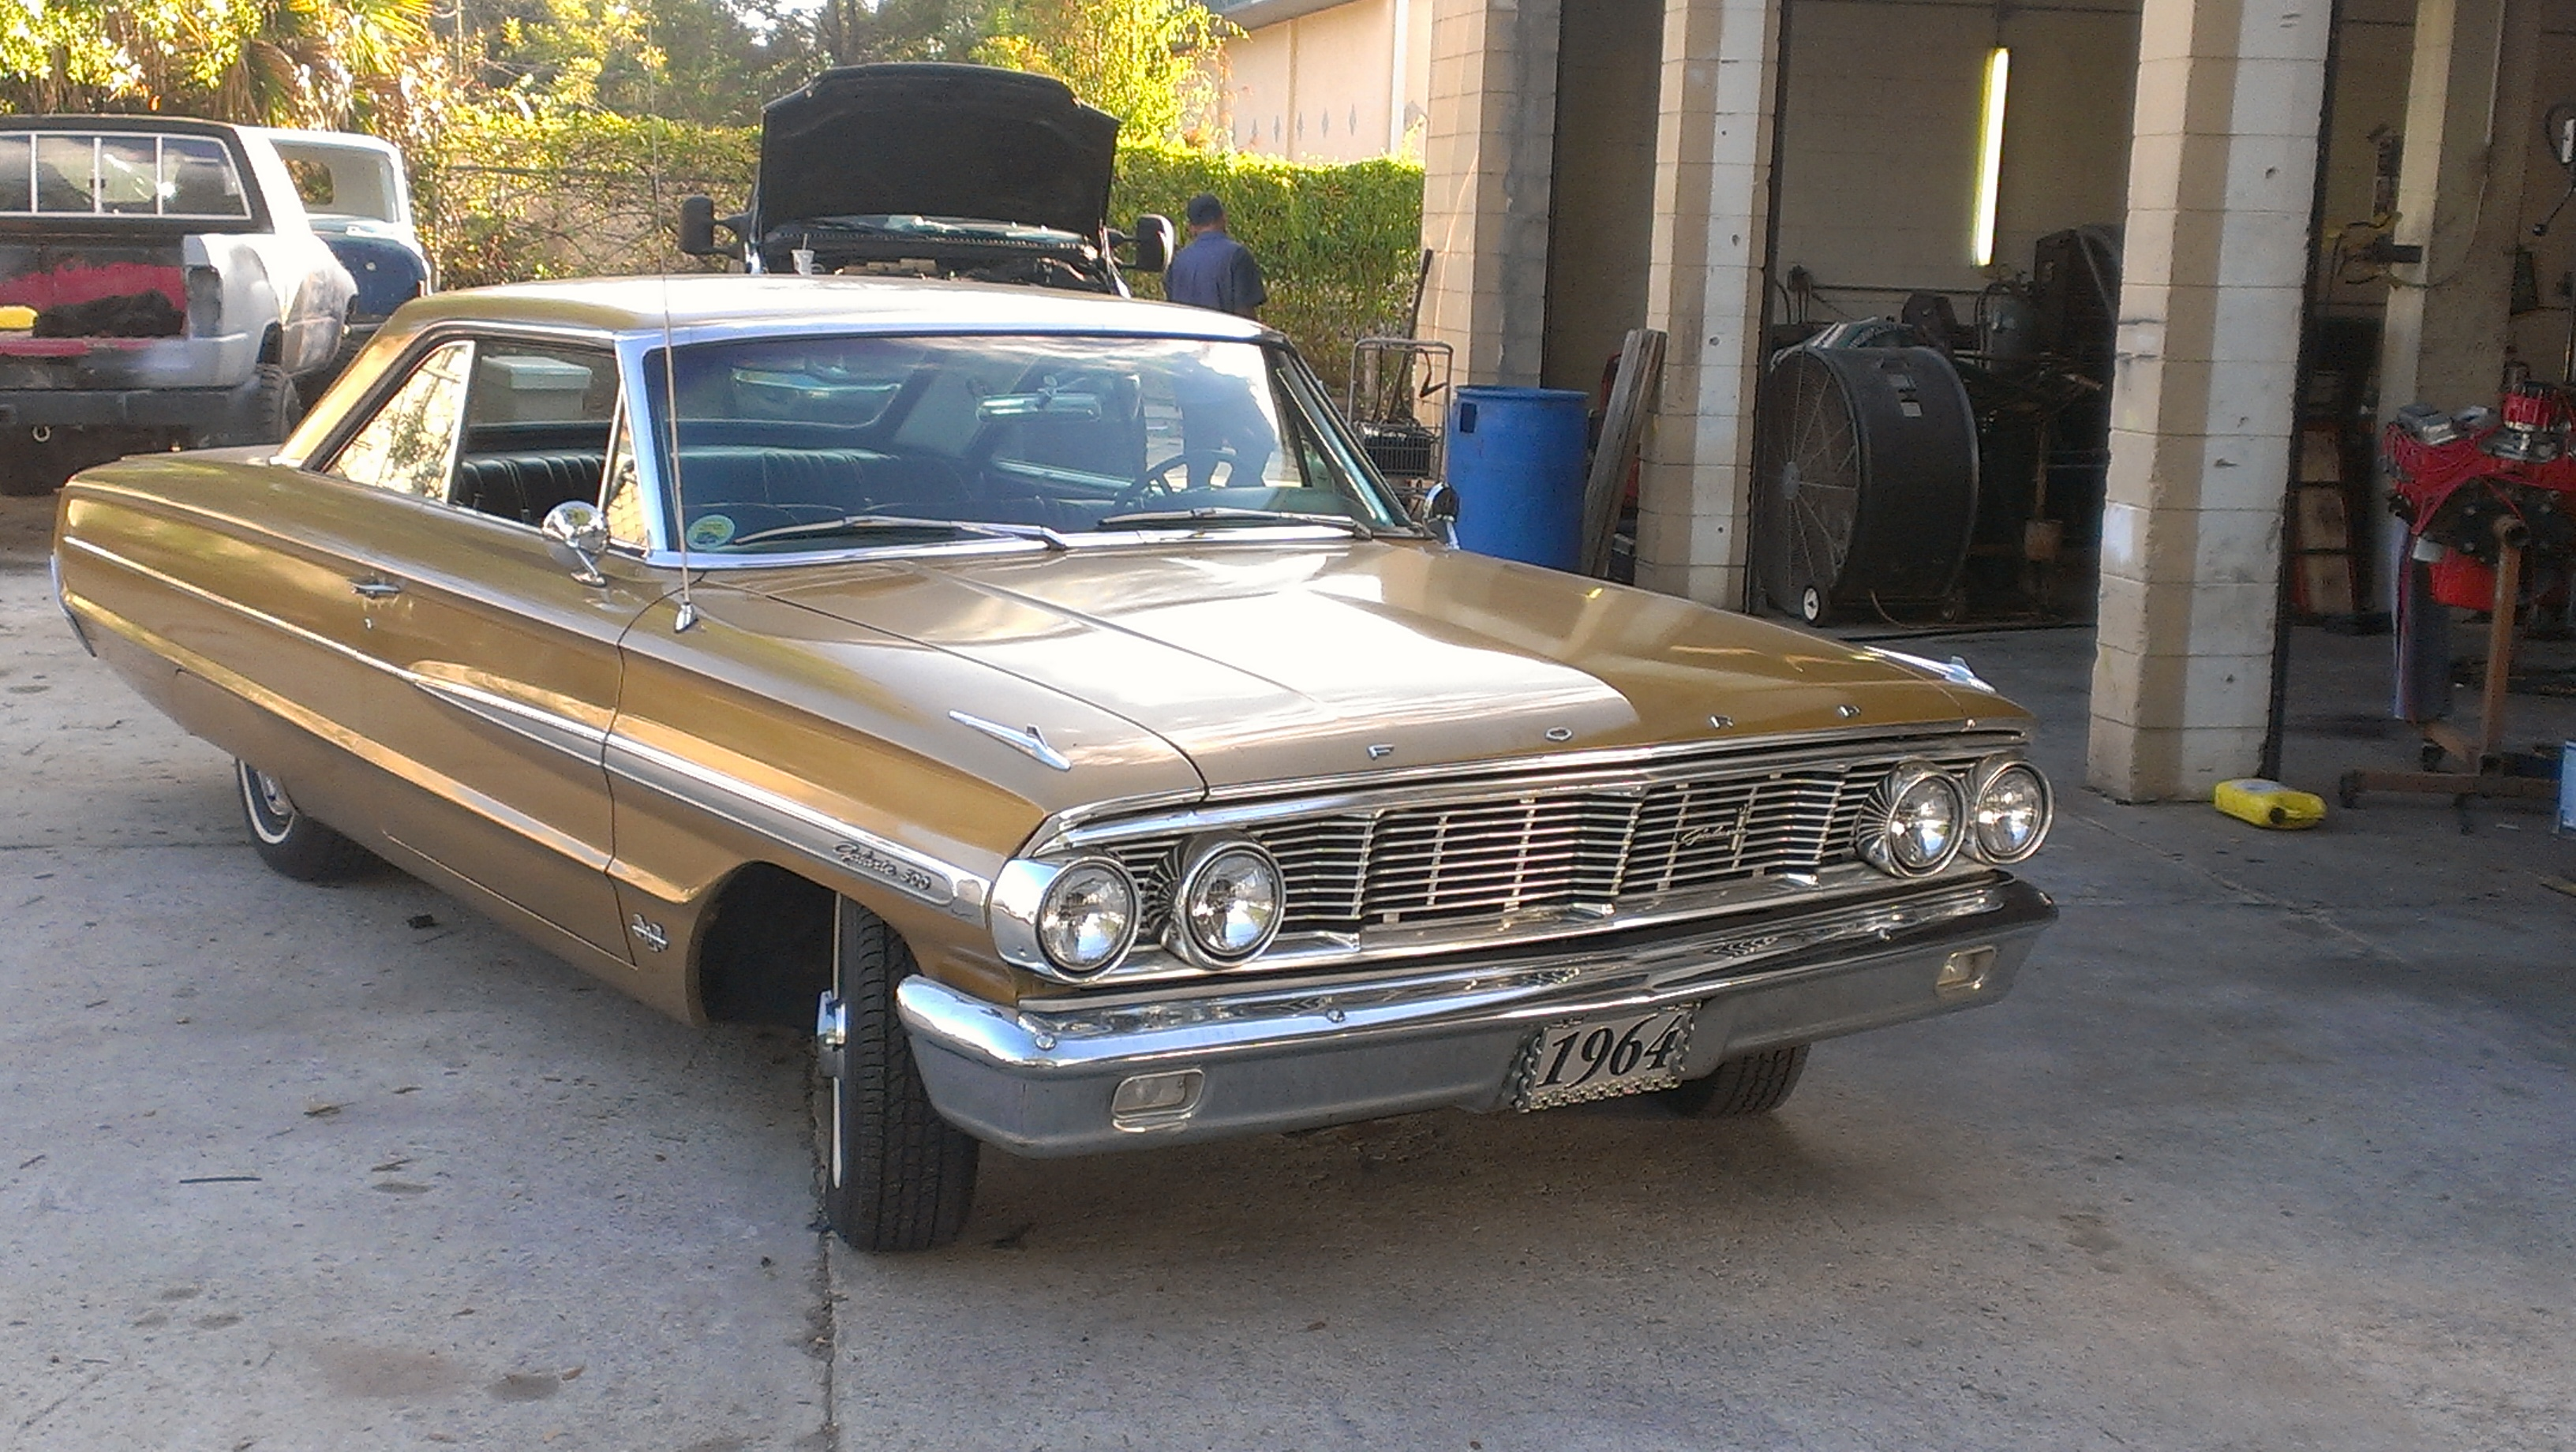 1964 GALAXIE 500WE WORKED ON